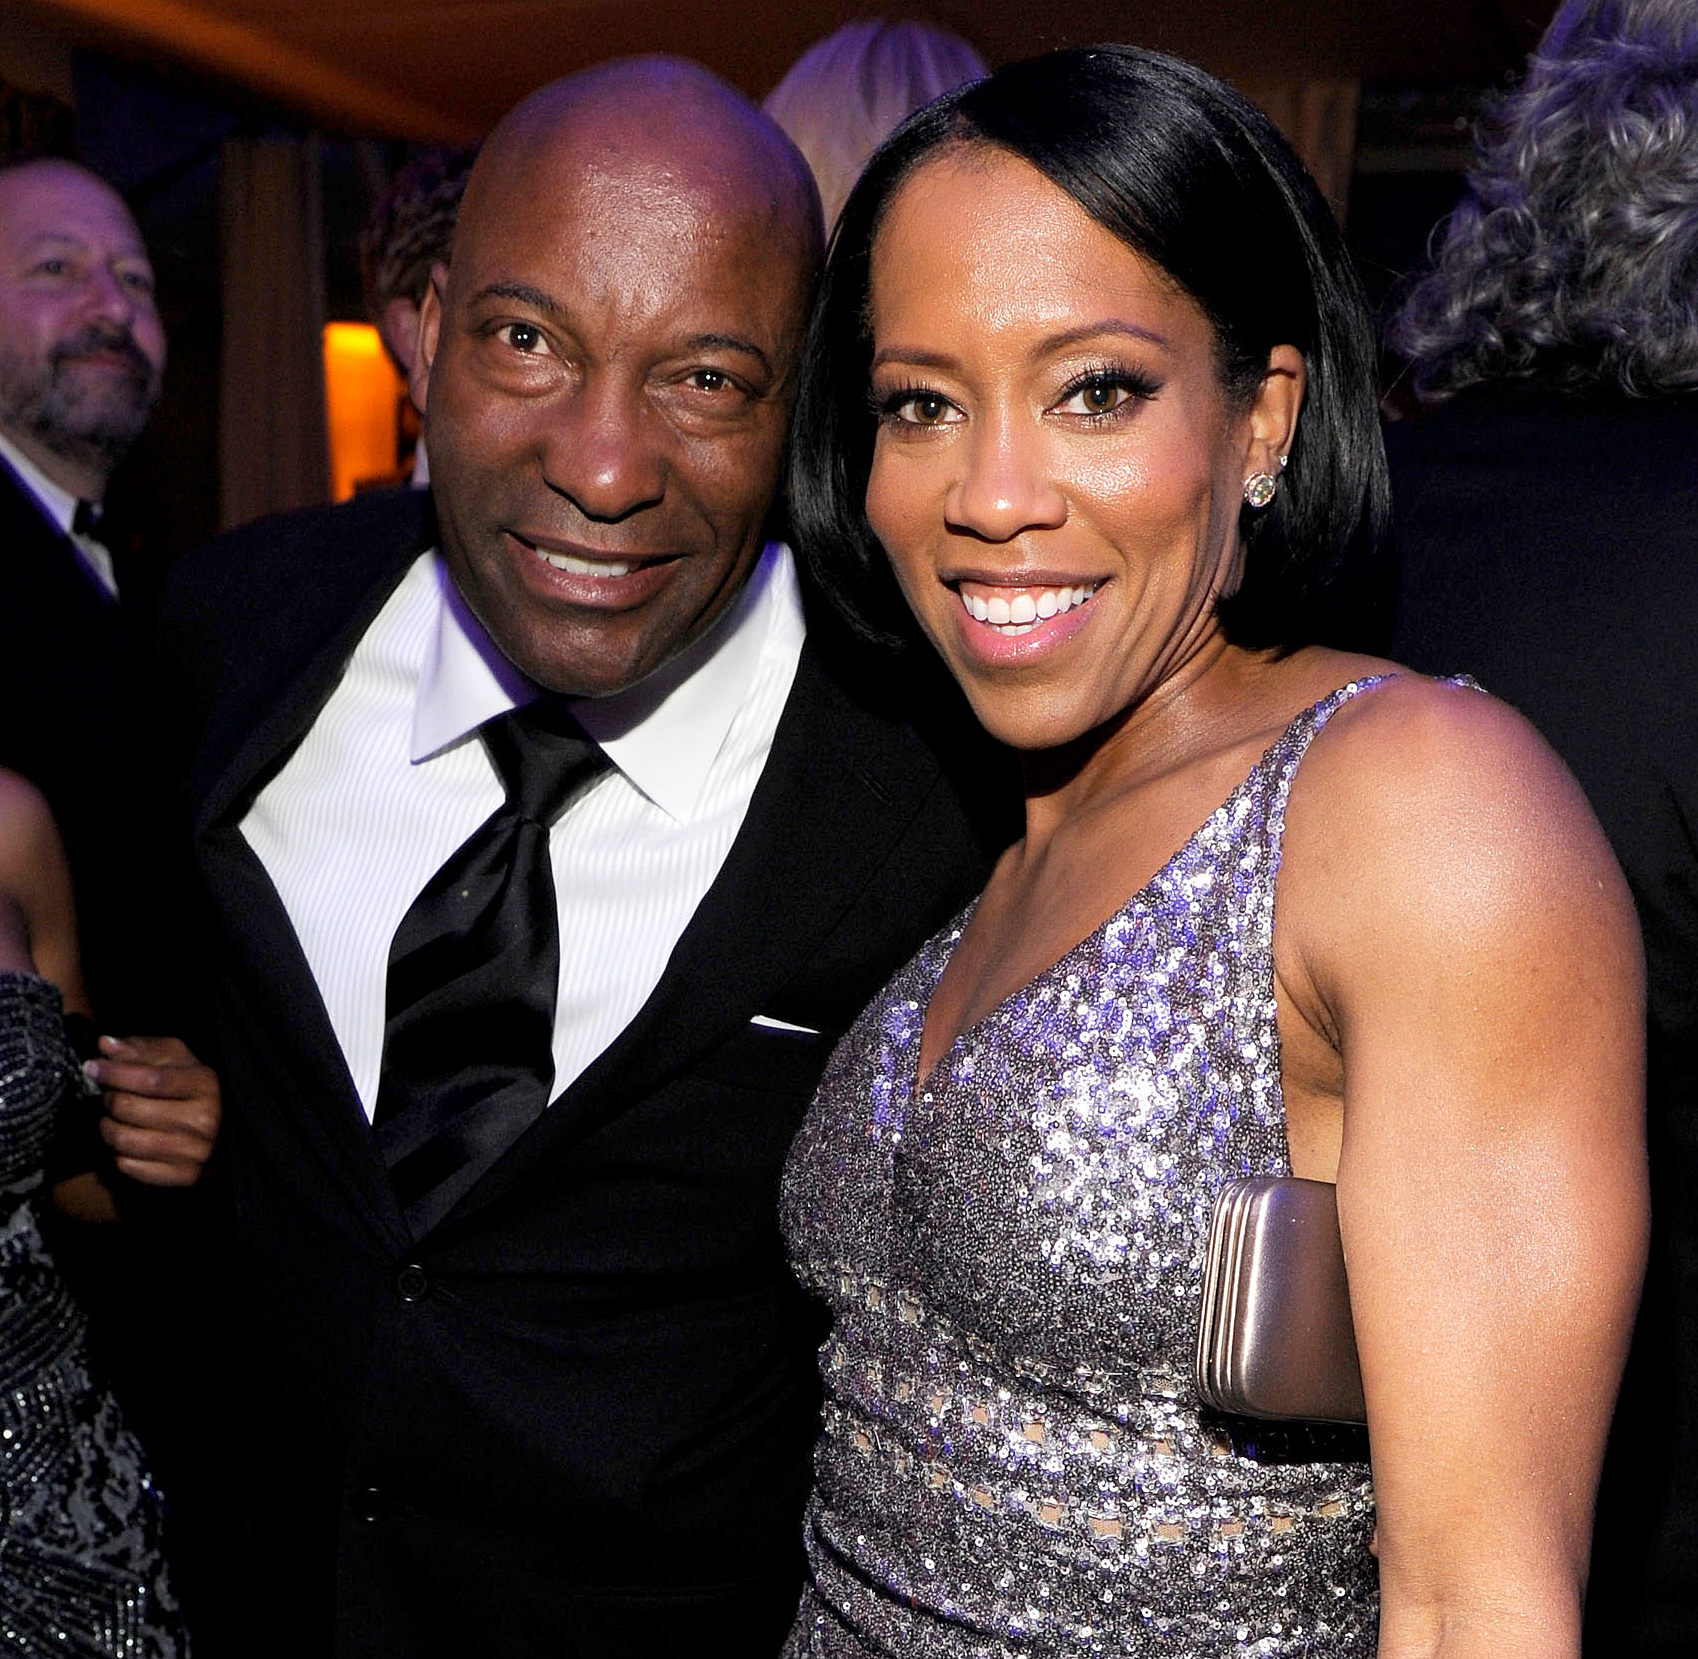 """John-Singleton-and-Regina-King - King shared a throwback photo of herself with the late star. """"Rest In Power, my friend,"""" she wrote on Instagram."""